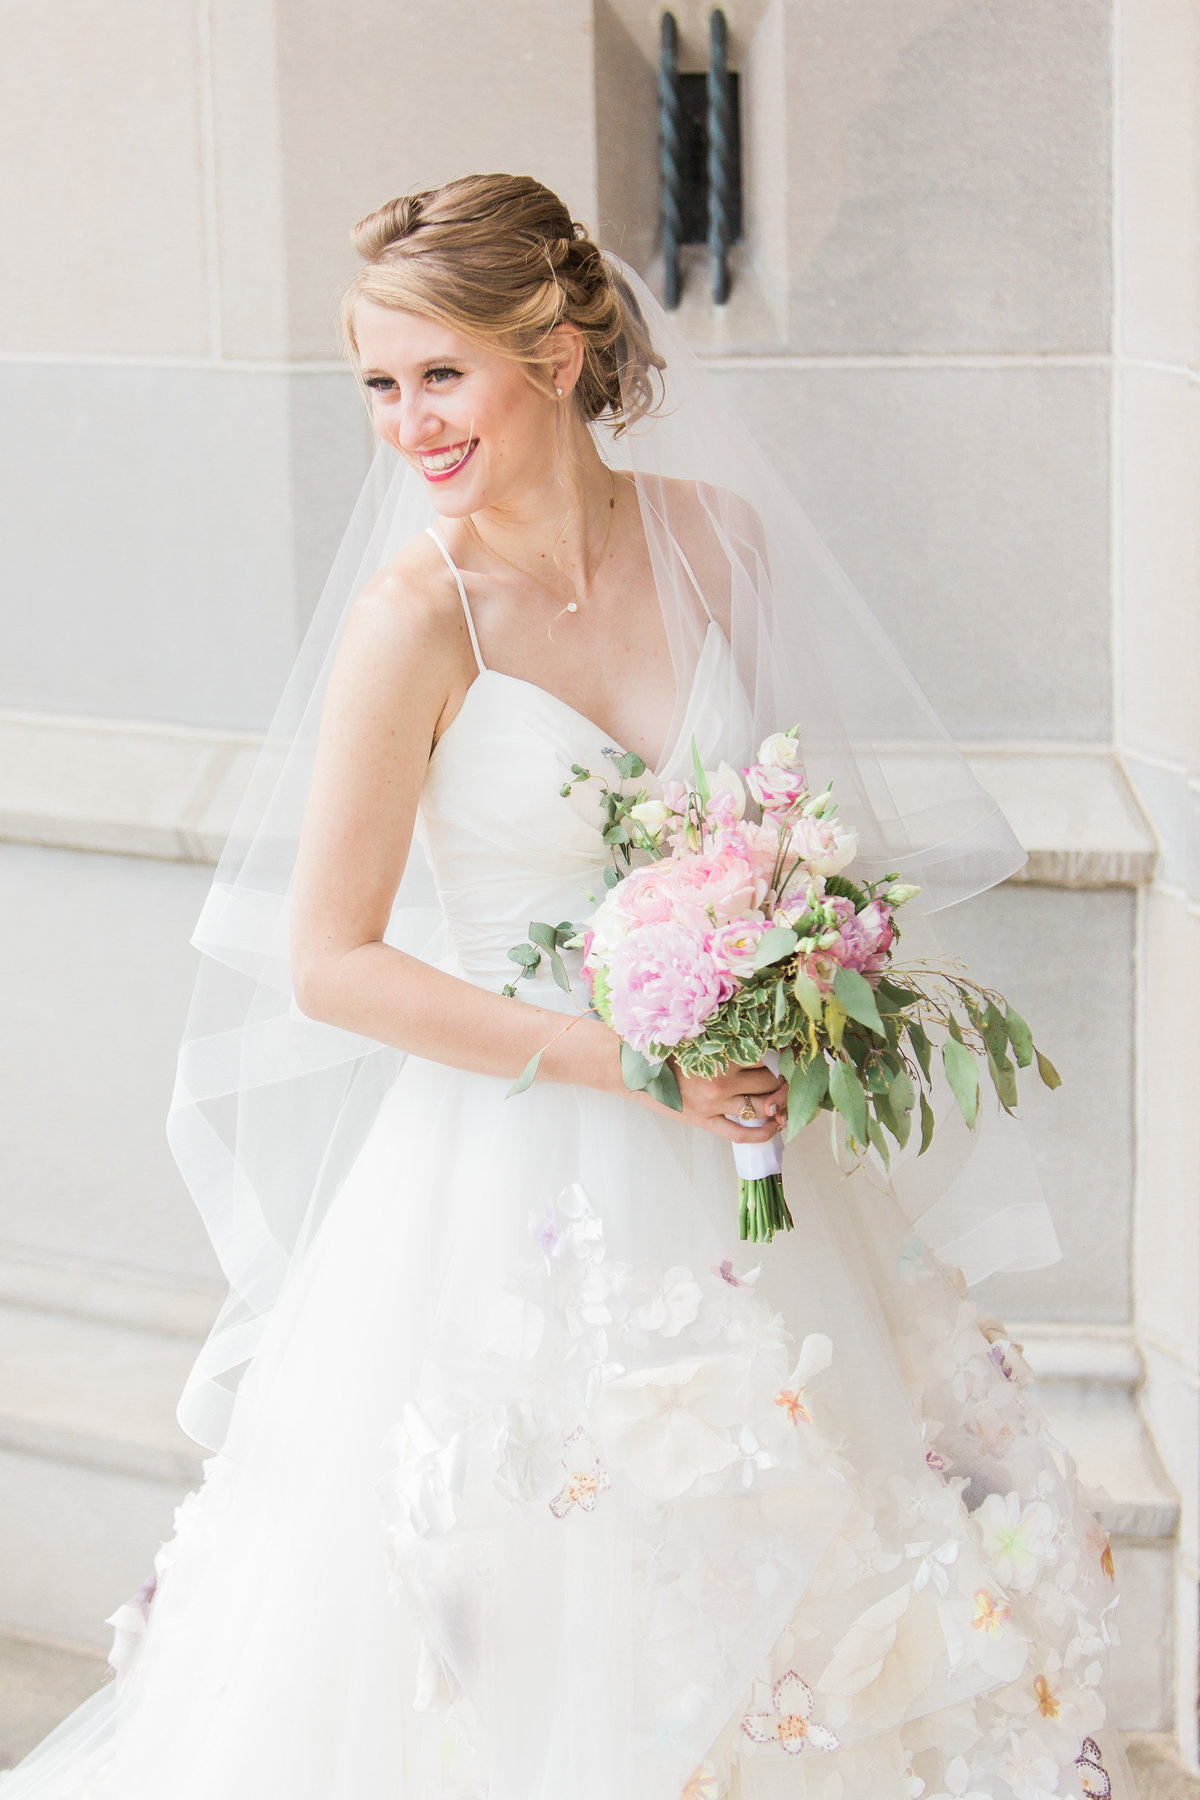 Basilica of the Sacred Heart Bride Laughing Photo